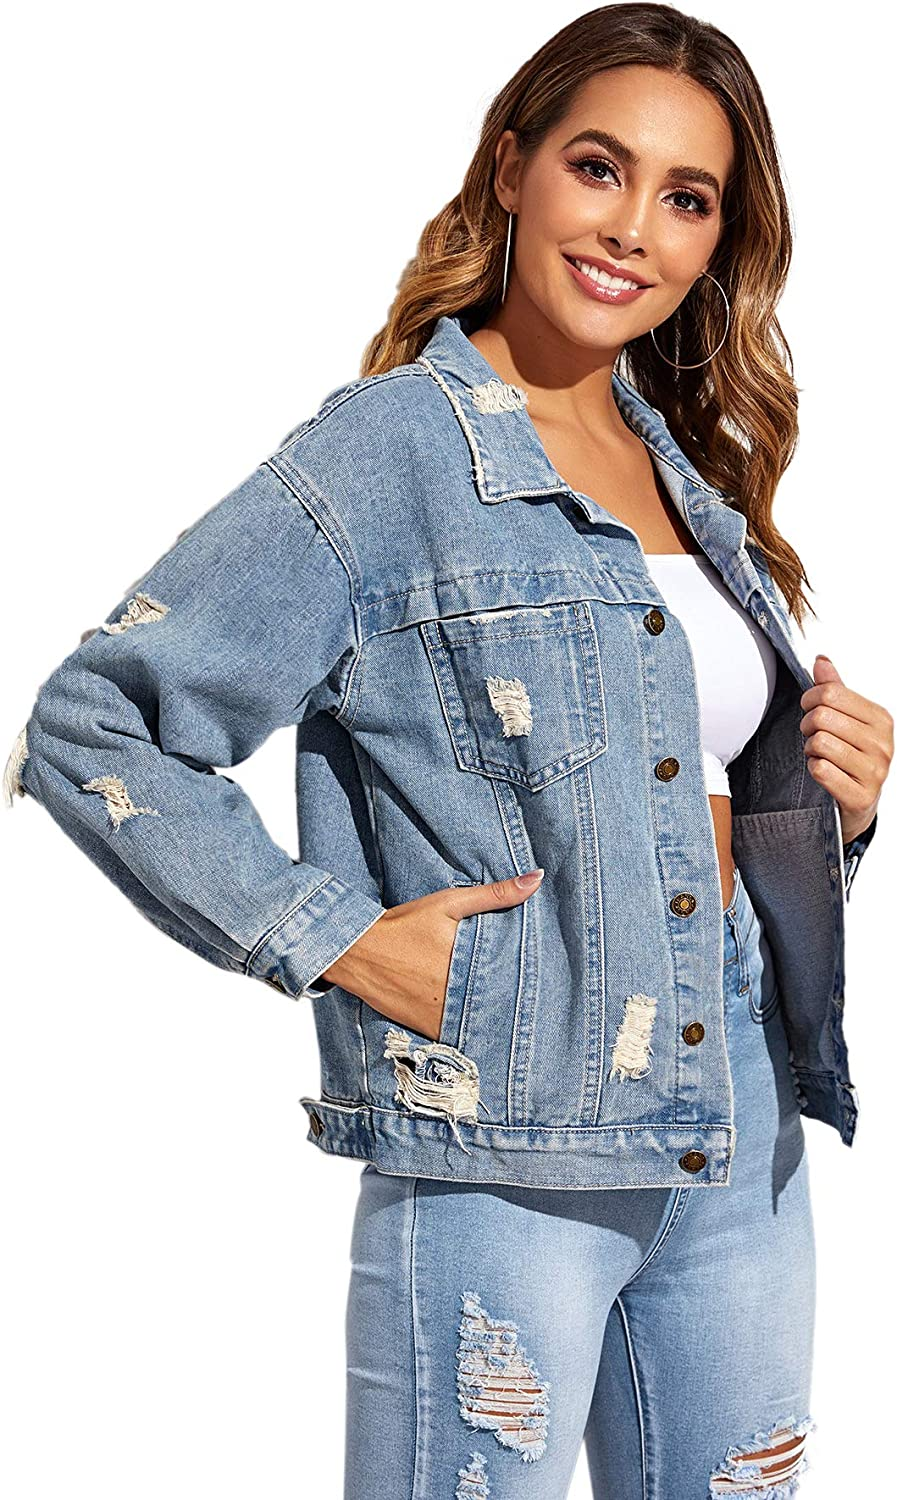 Floerns Womens Casual Ripped Button Down Long Sleeve Jean Denim Jacket